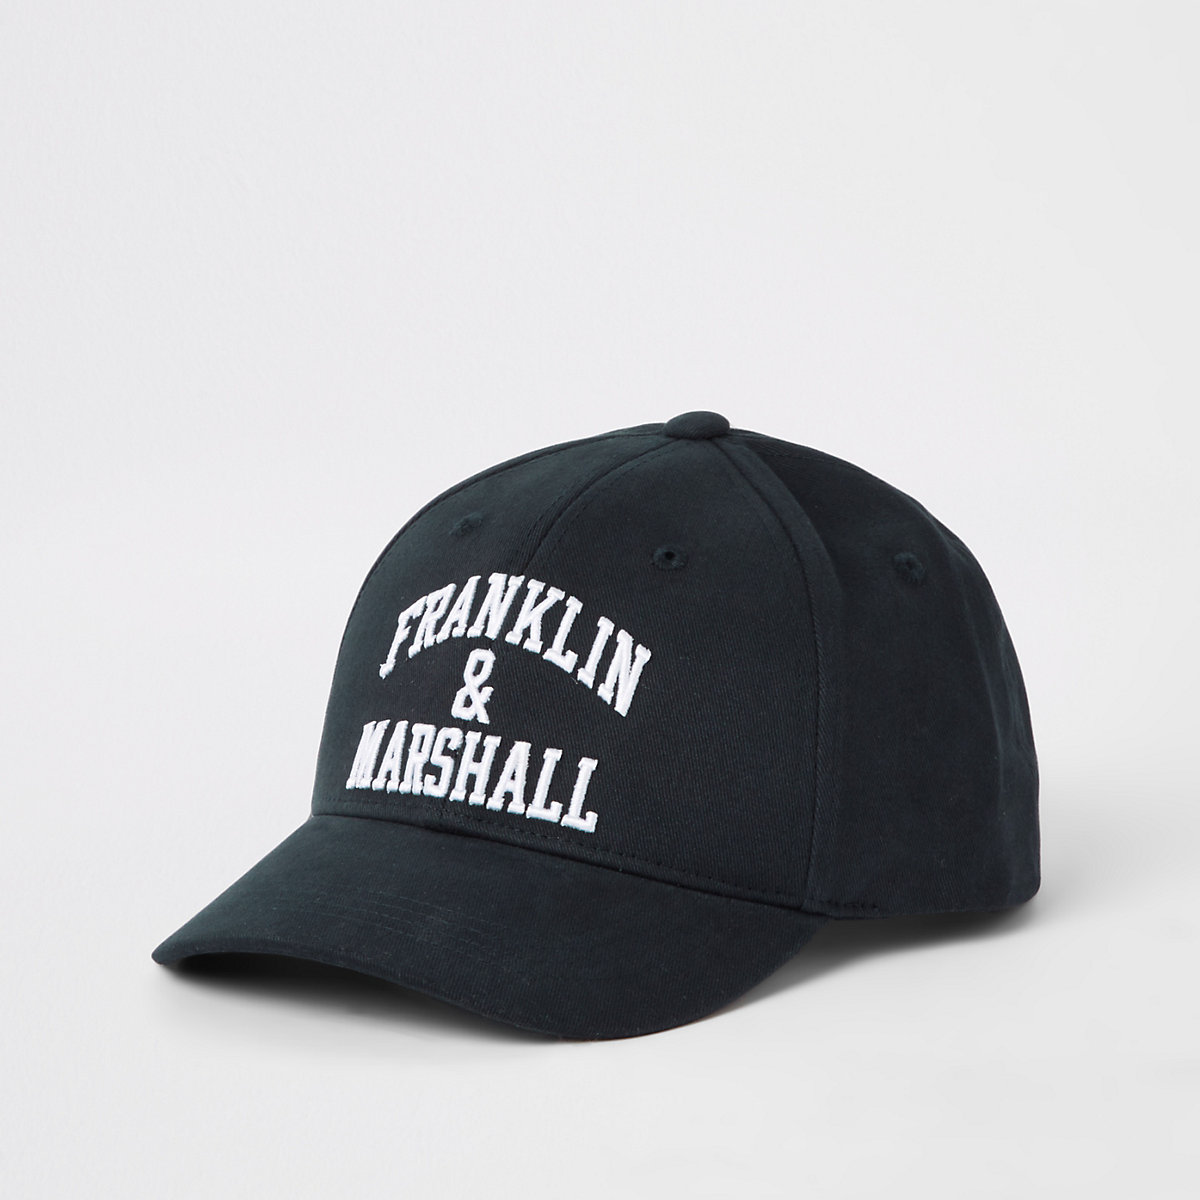 Boys Franklin and Marshall navy cap